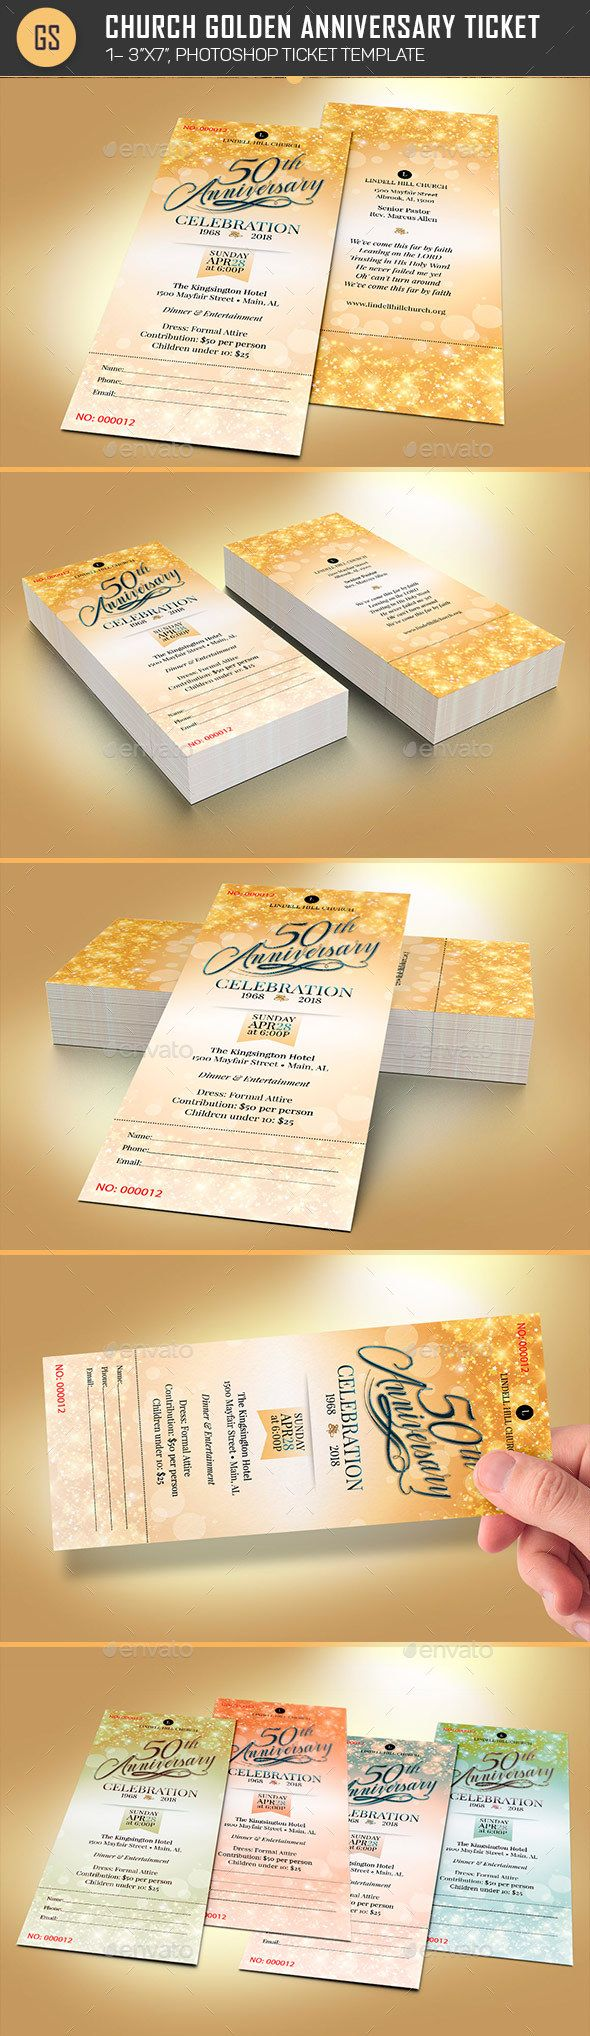 #Church Golden Anniversary Ticket Template - Miscellaneous #Print Templates